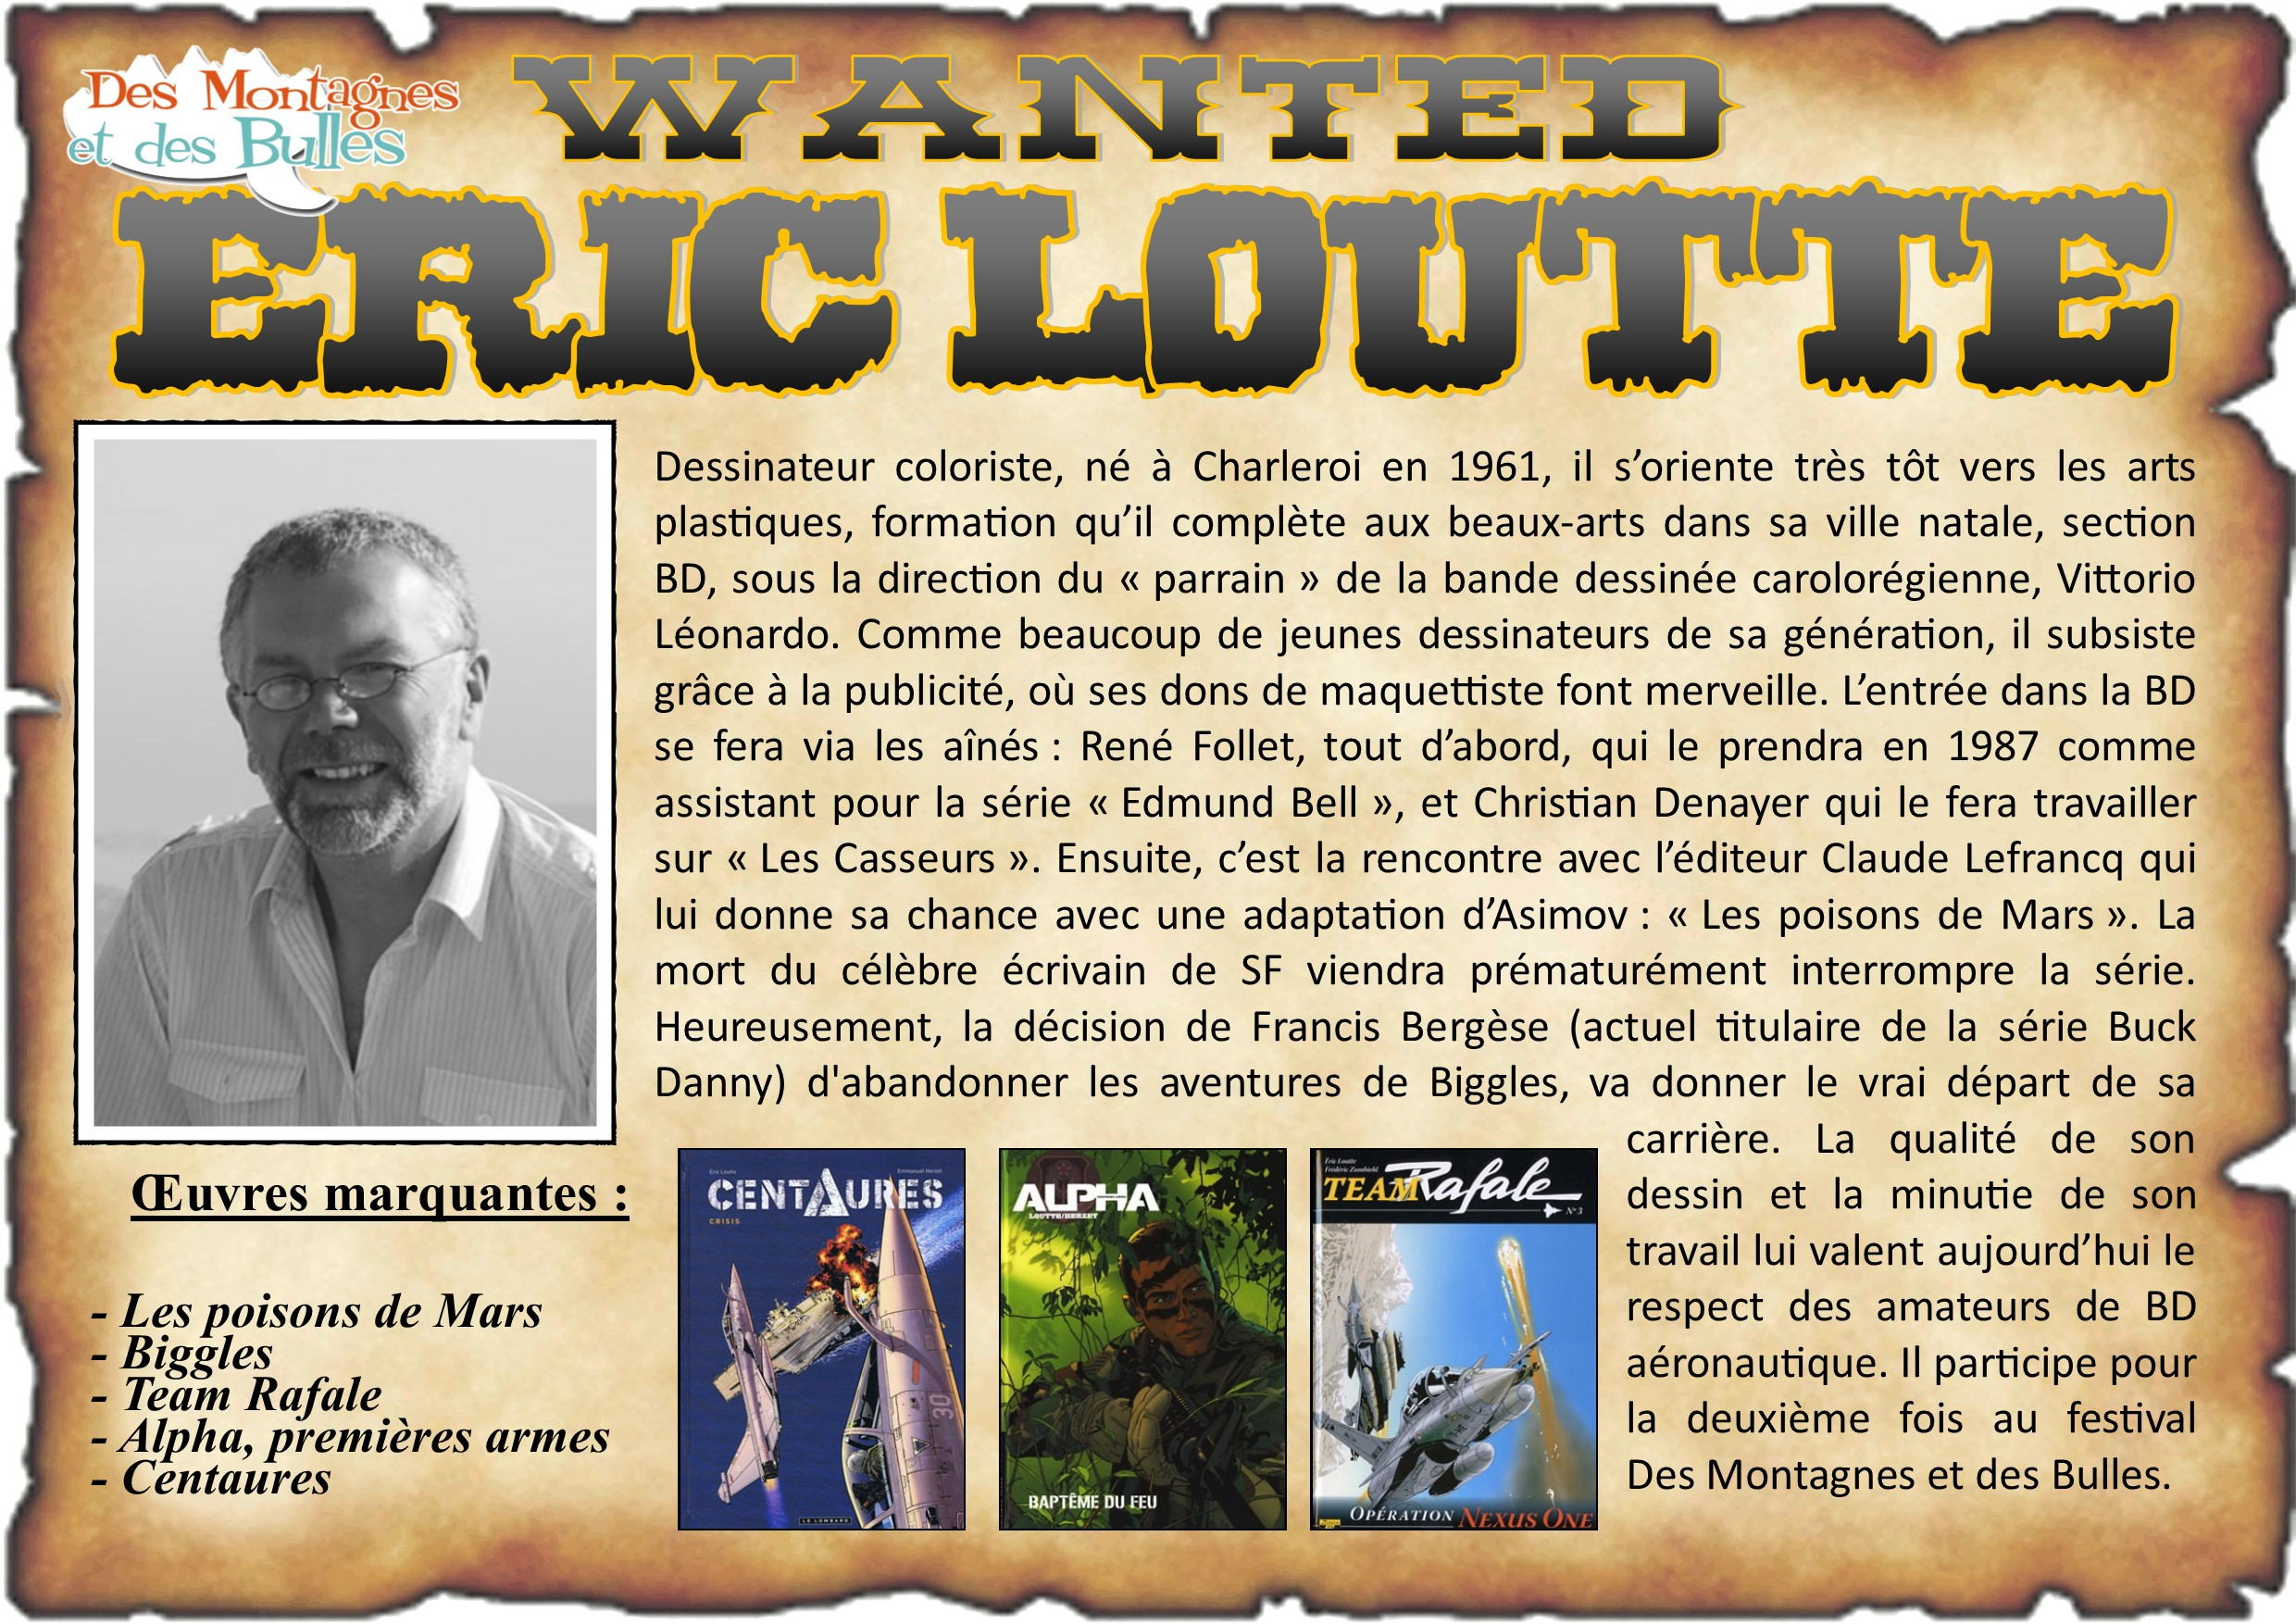 Eric Loutte